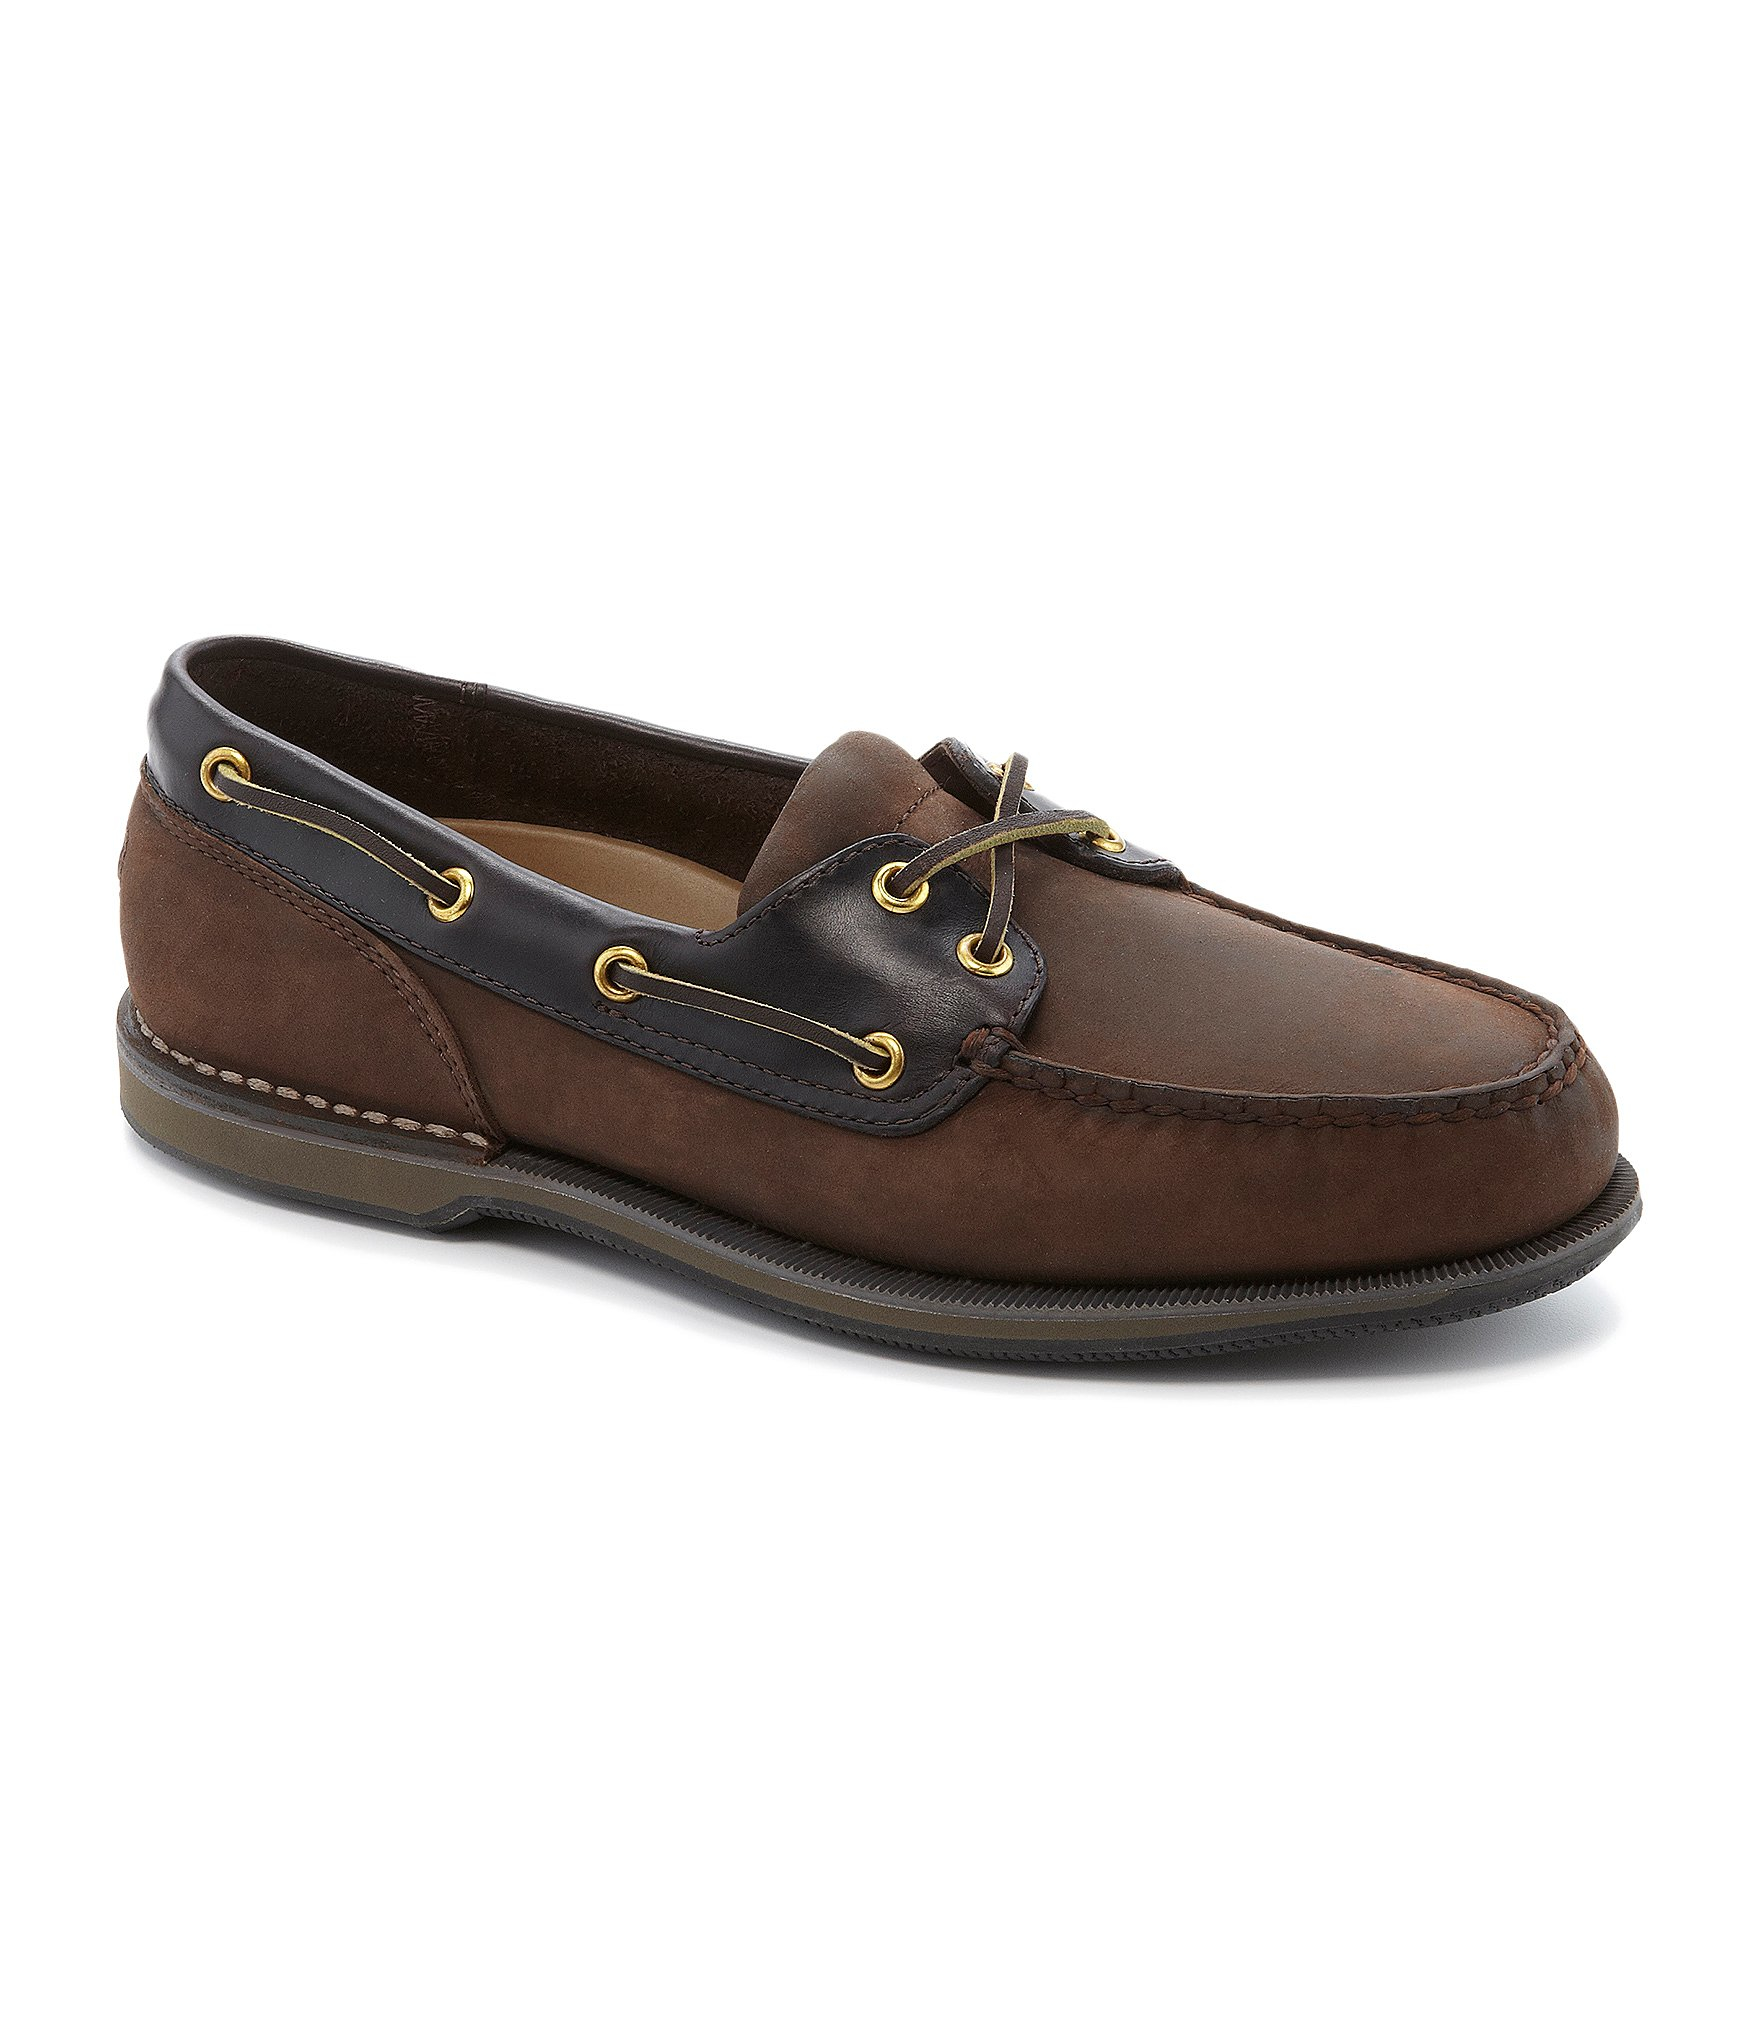 rockport perth casual boat shoes in brown for lyst